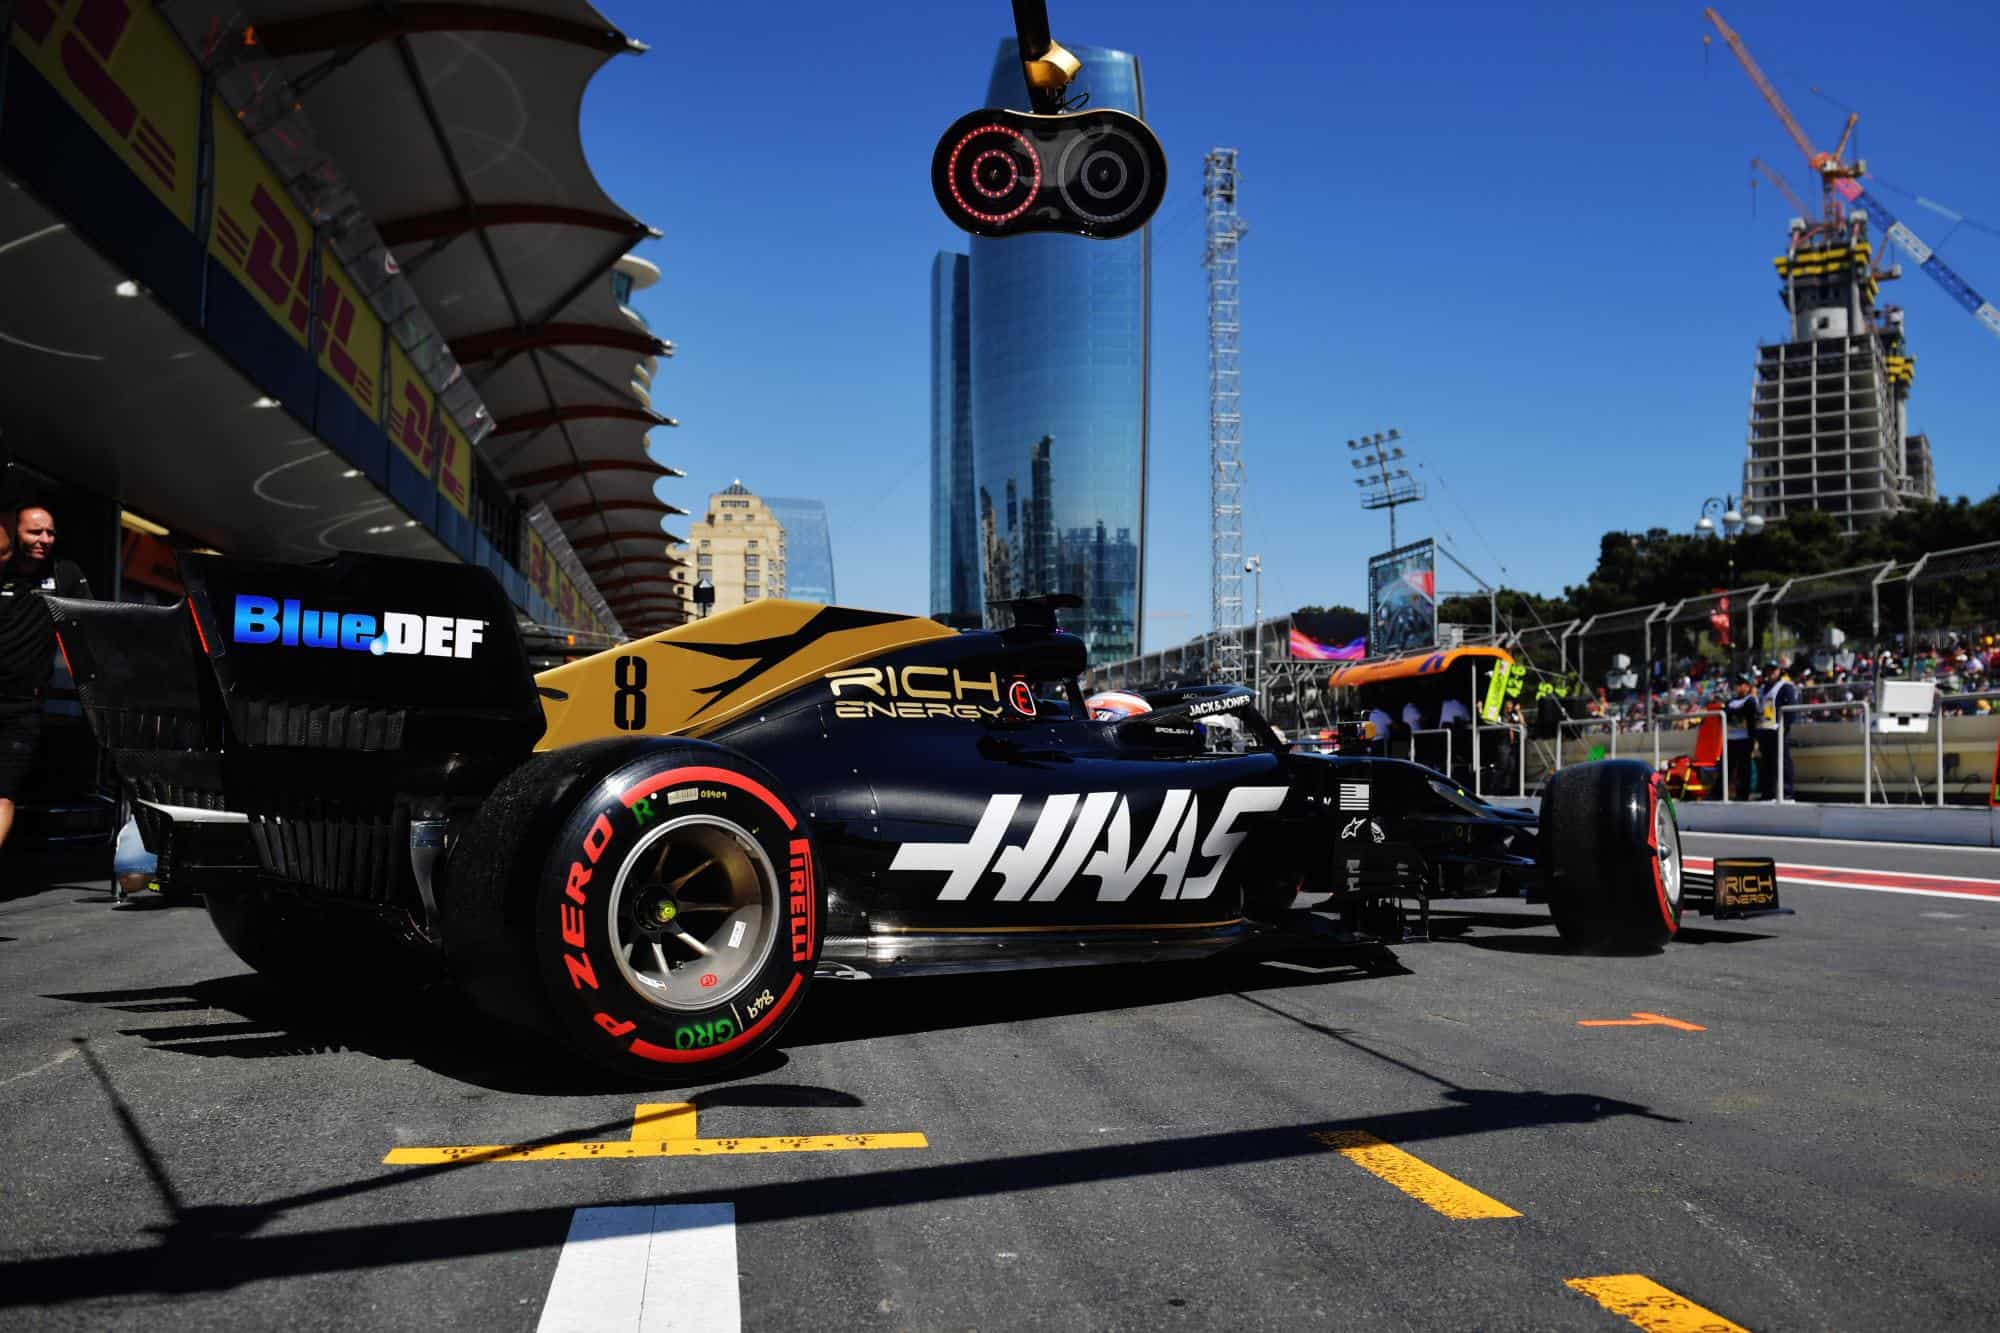 Romain Grosjean Haas Ferrari Azerbaijan GP F1 2019 pitlane Photo Haas